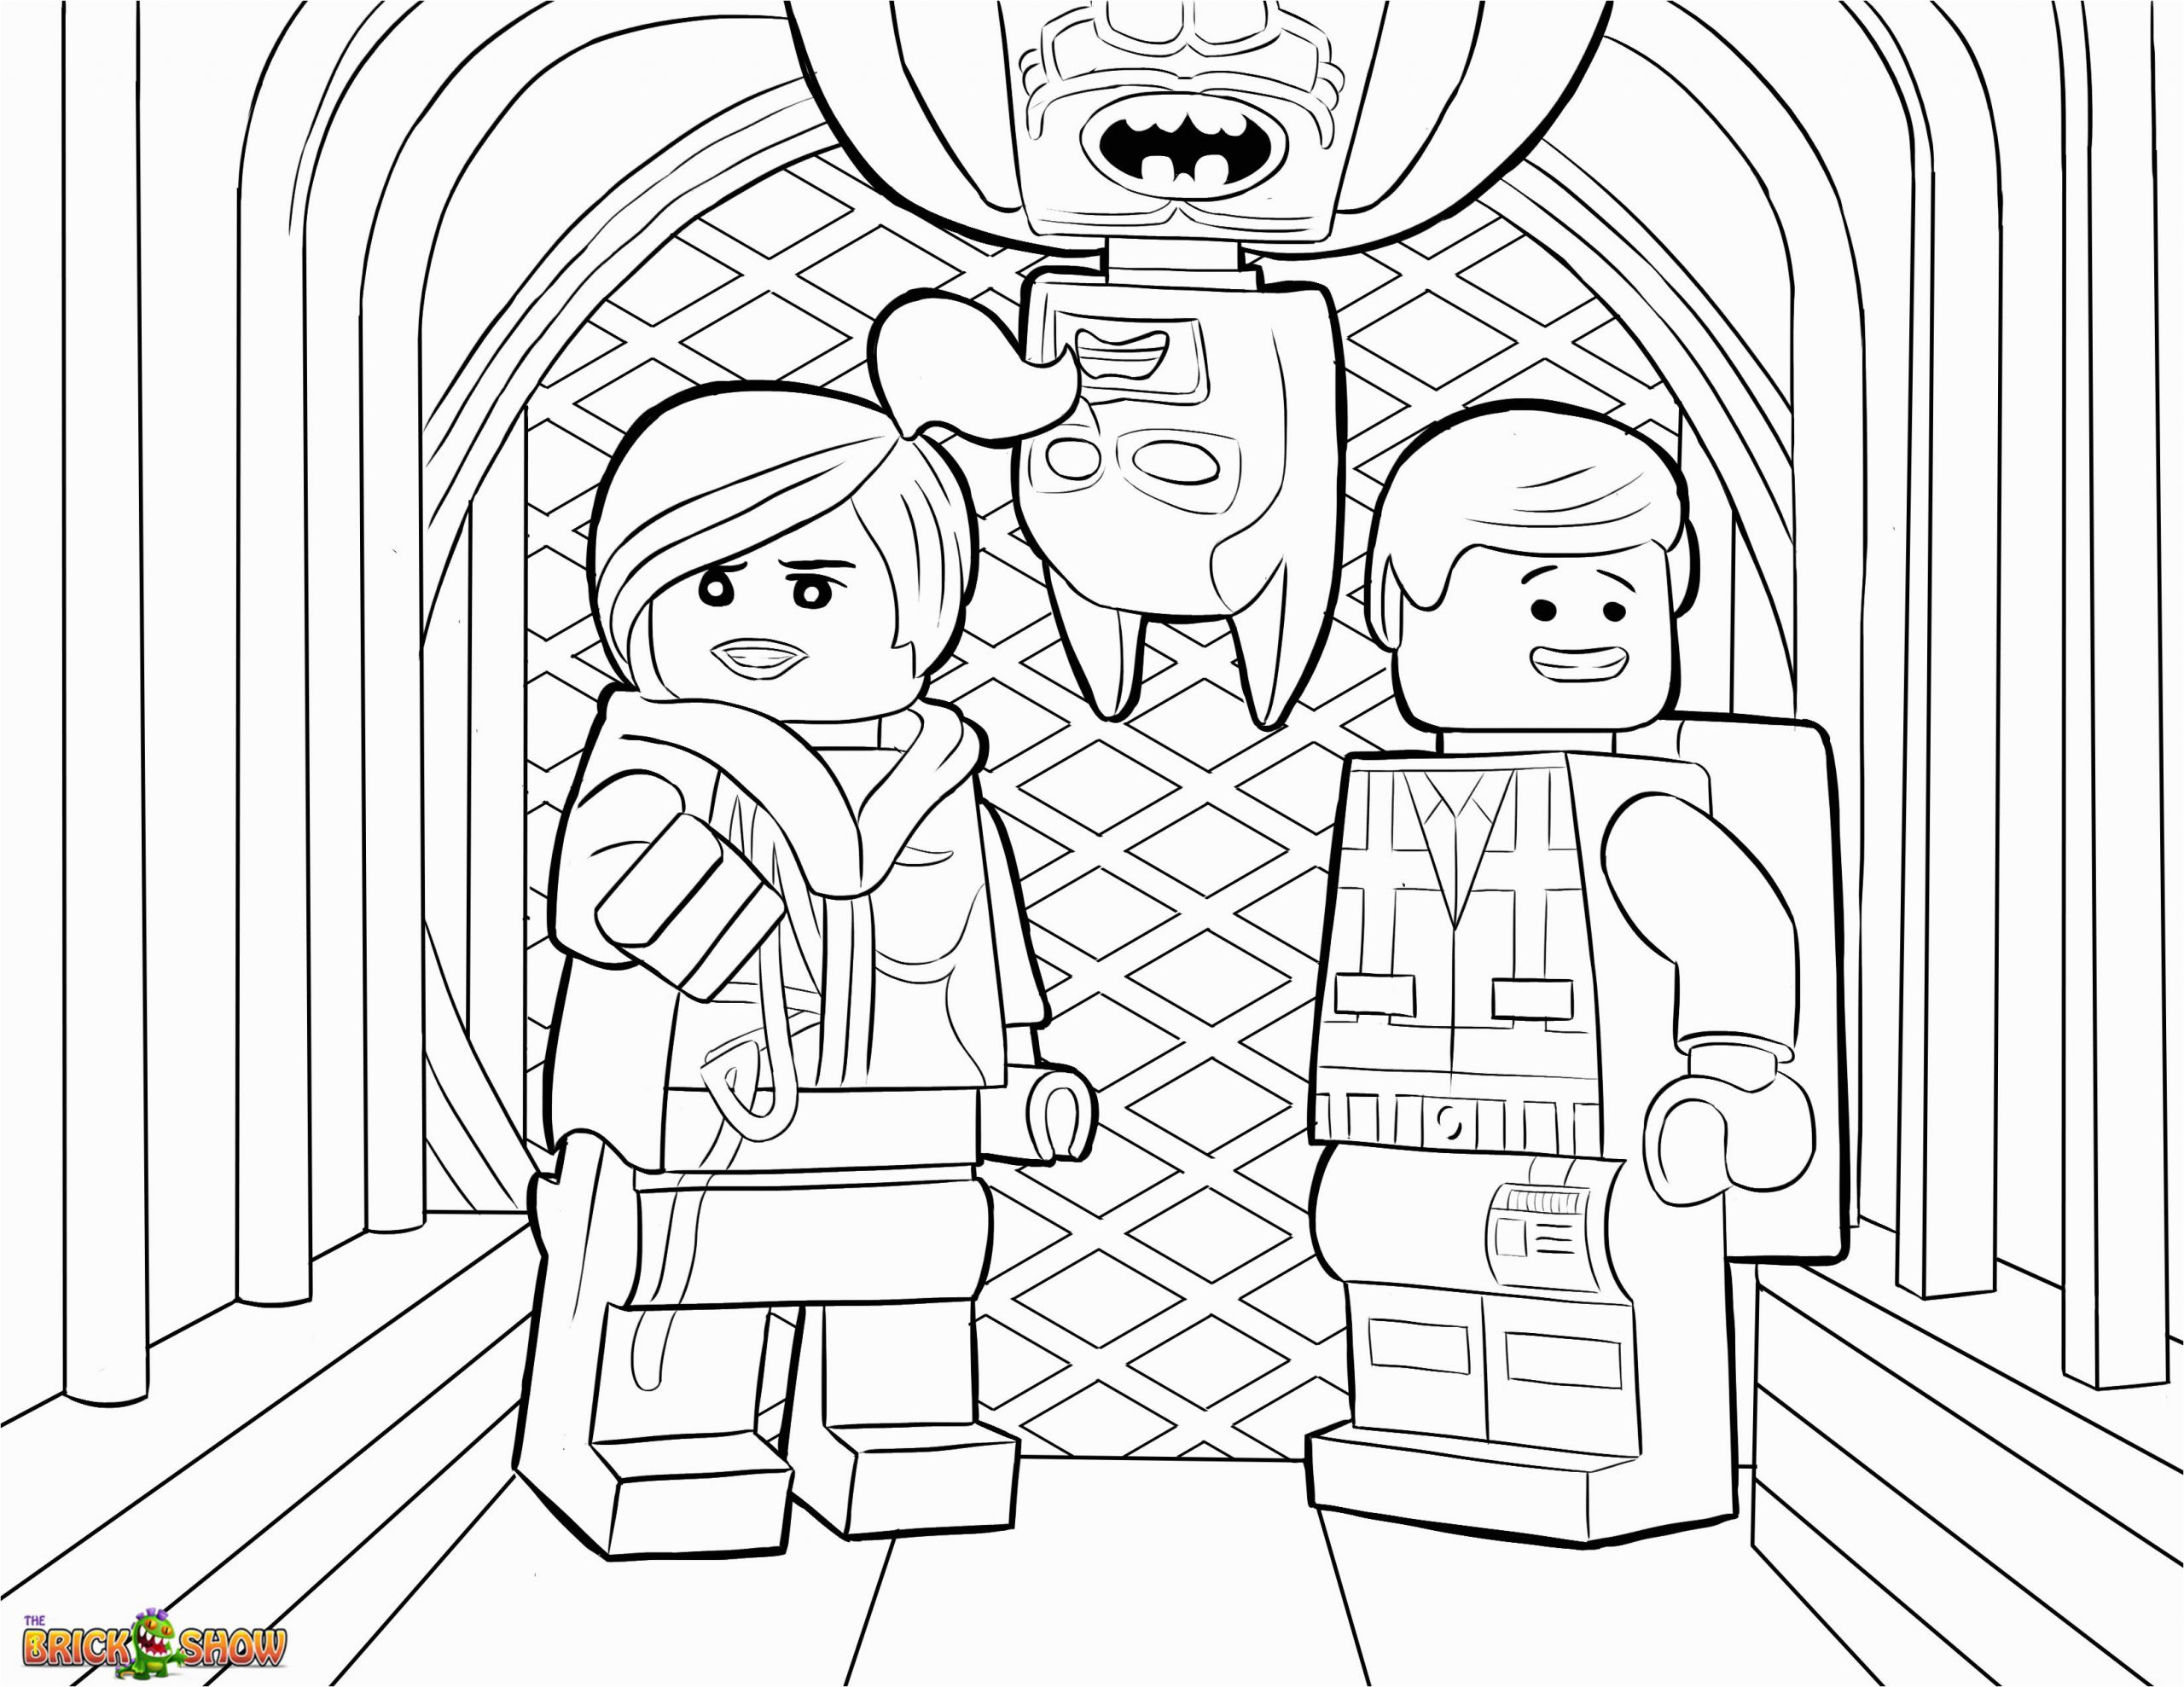 3f4361cb0a573c c0a10e362b462 magic lego emmet coloring pages the lego movie page wyldstyle 3300 2550